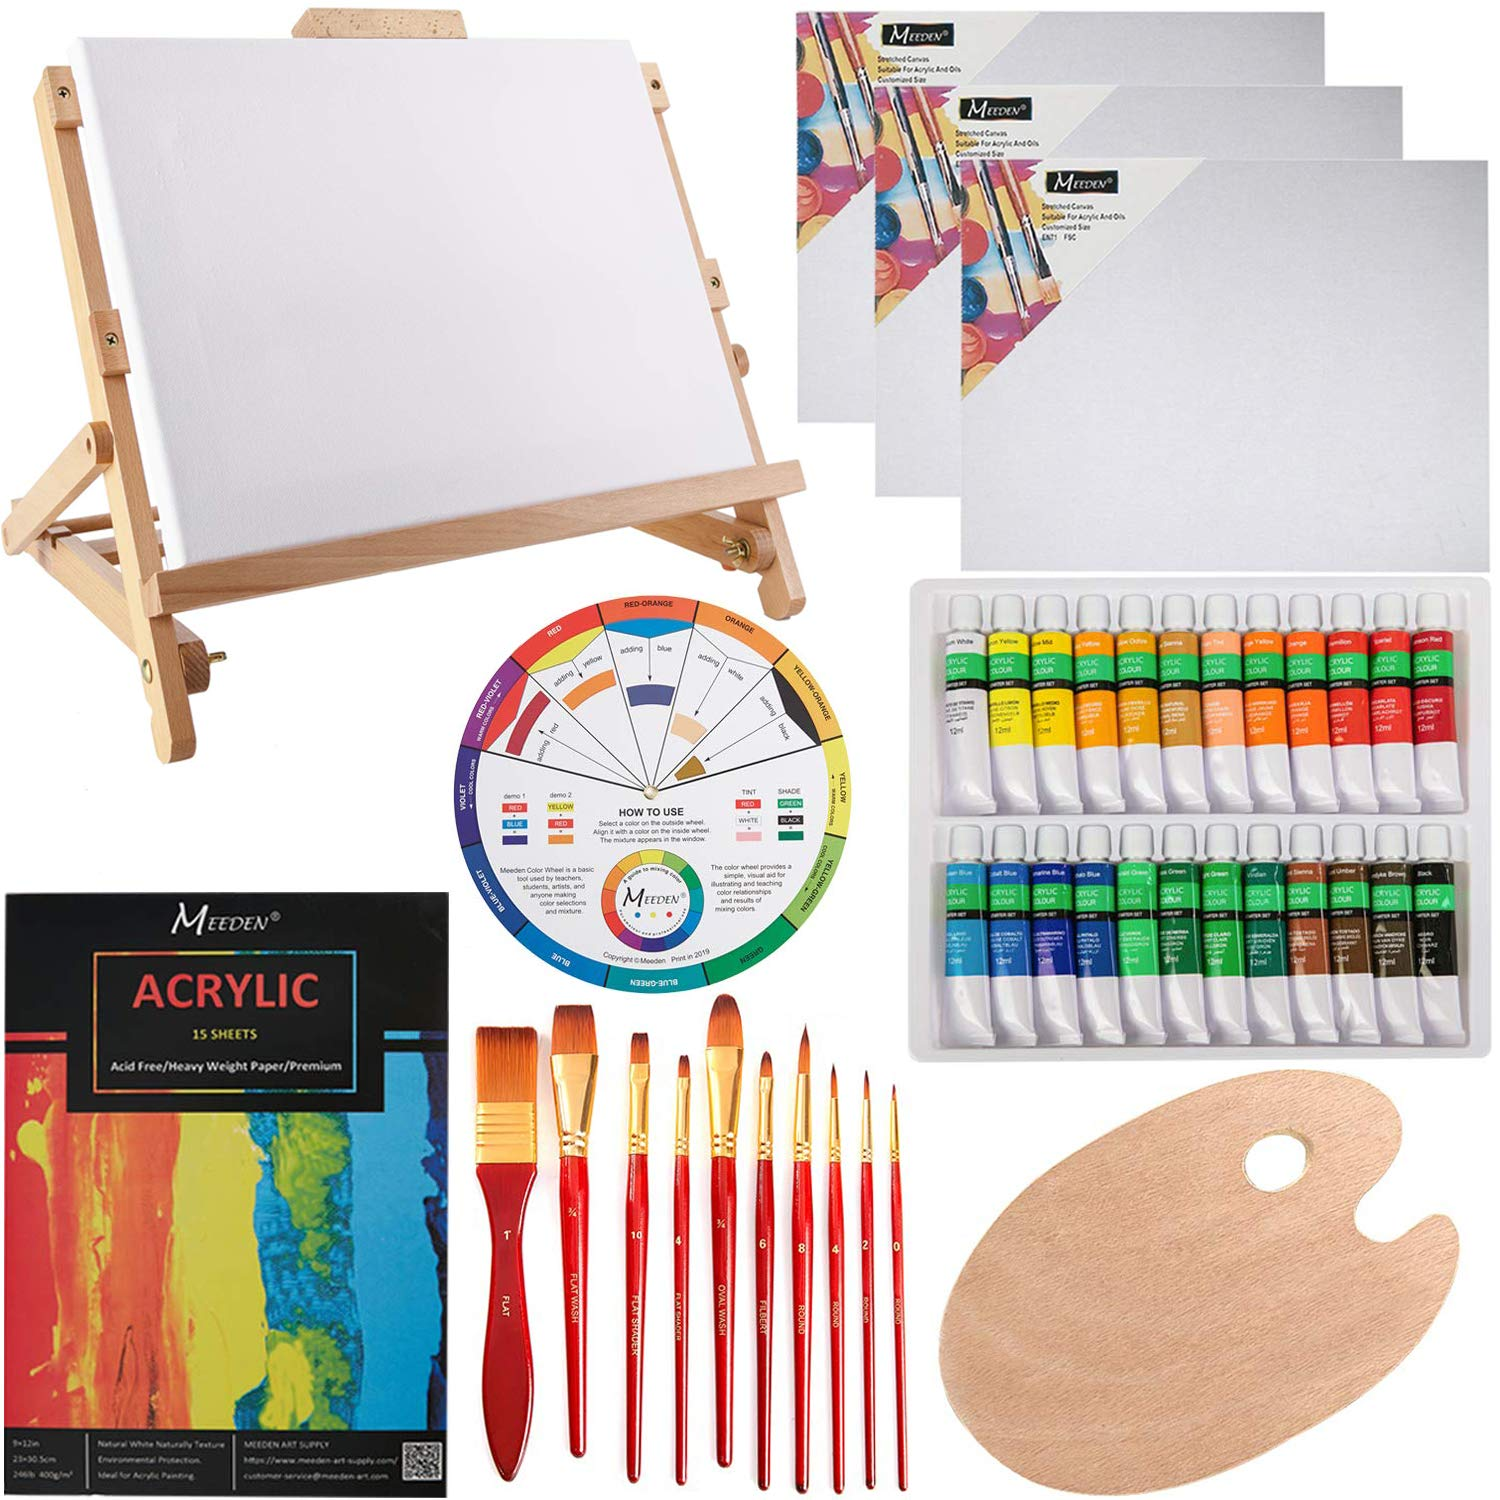 MEEDEN 42Pcs Acrylic Painting Set with Solid Beech Wood Table Easel, Paint Tubes, Stretched Canvas, Painting Brushes, Pad and Panels, Wood Palette, Color Mixing Wheel, Great Student Artist Starter Set by MEEDEN